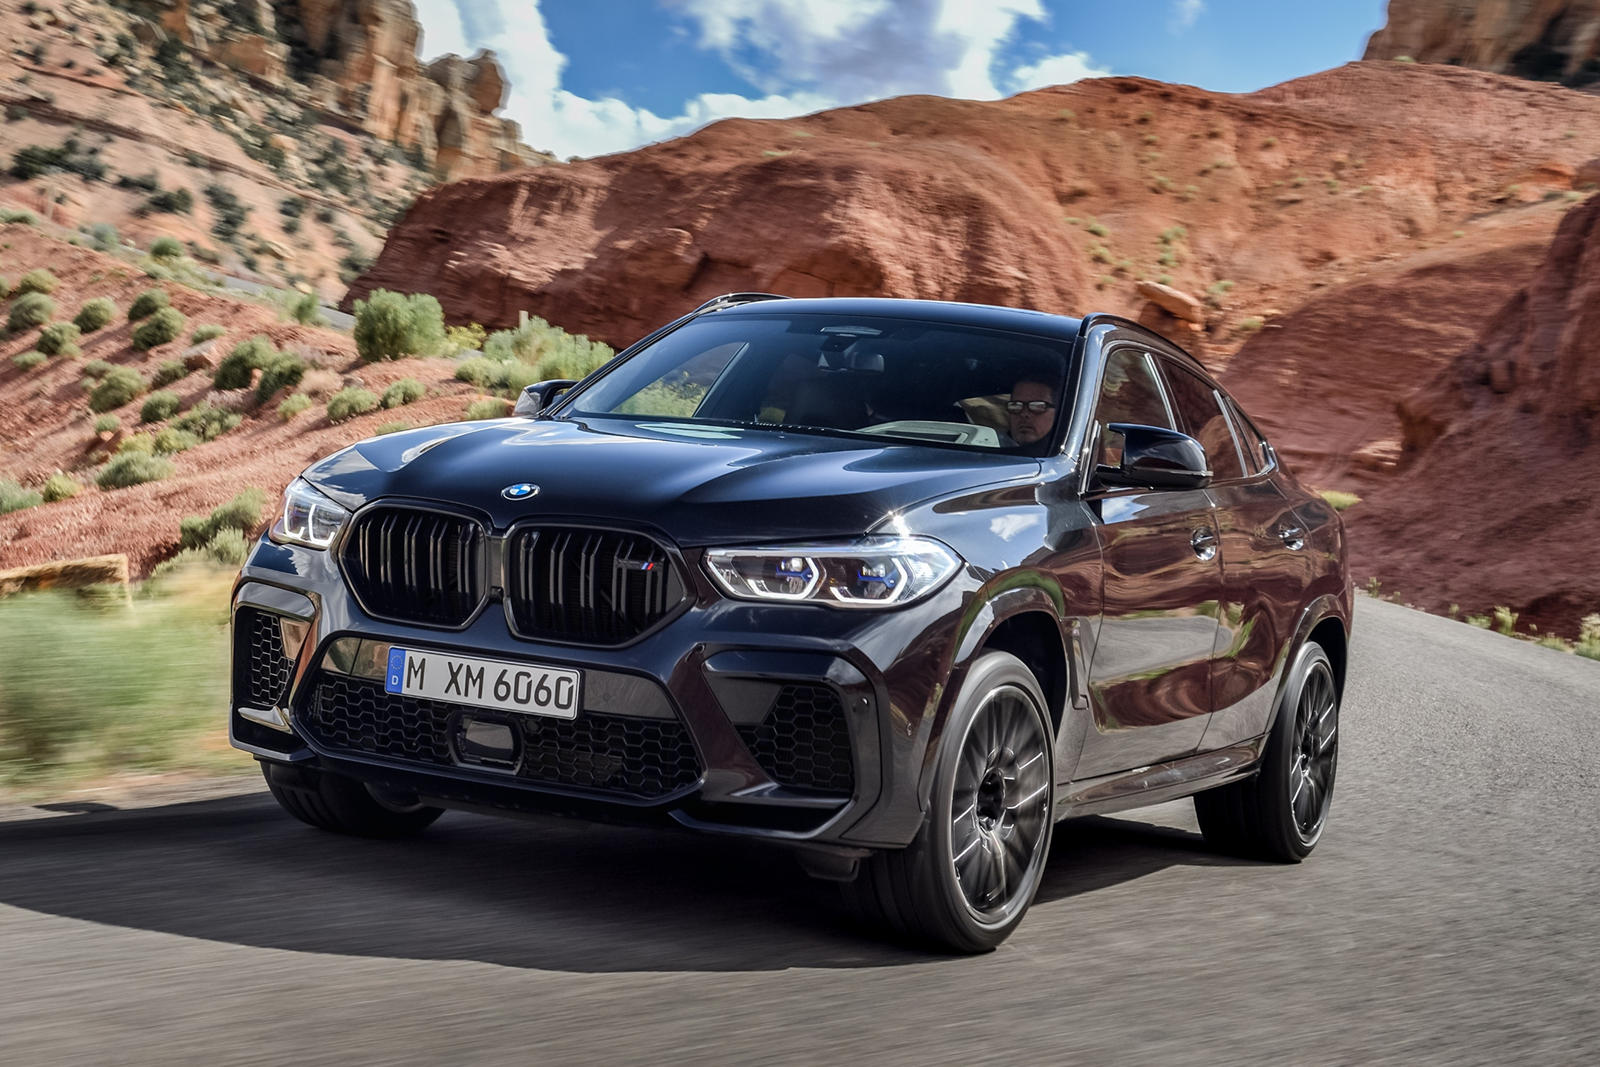 2020 BMW X6 M First Look Review: Supercar Levels Of ...